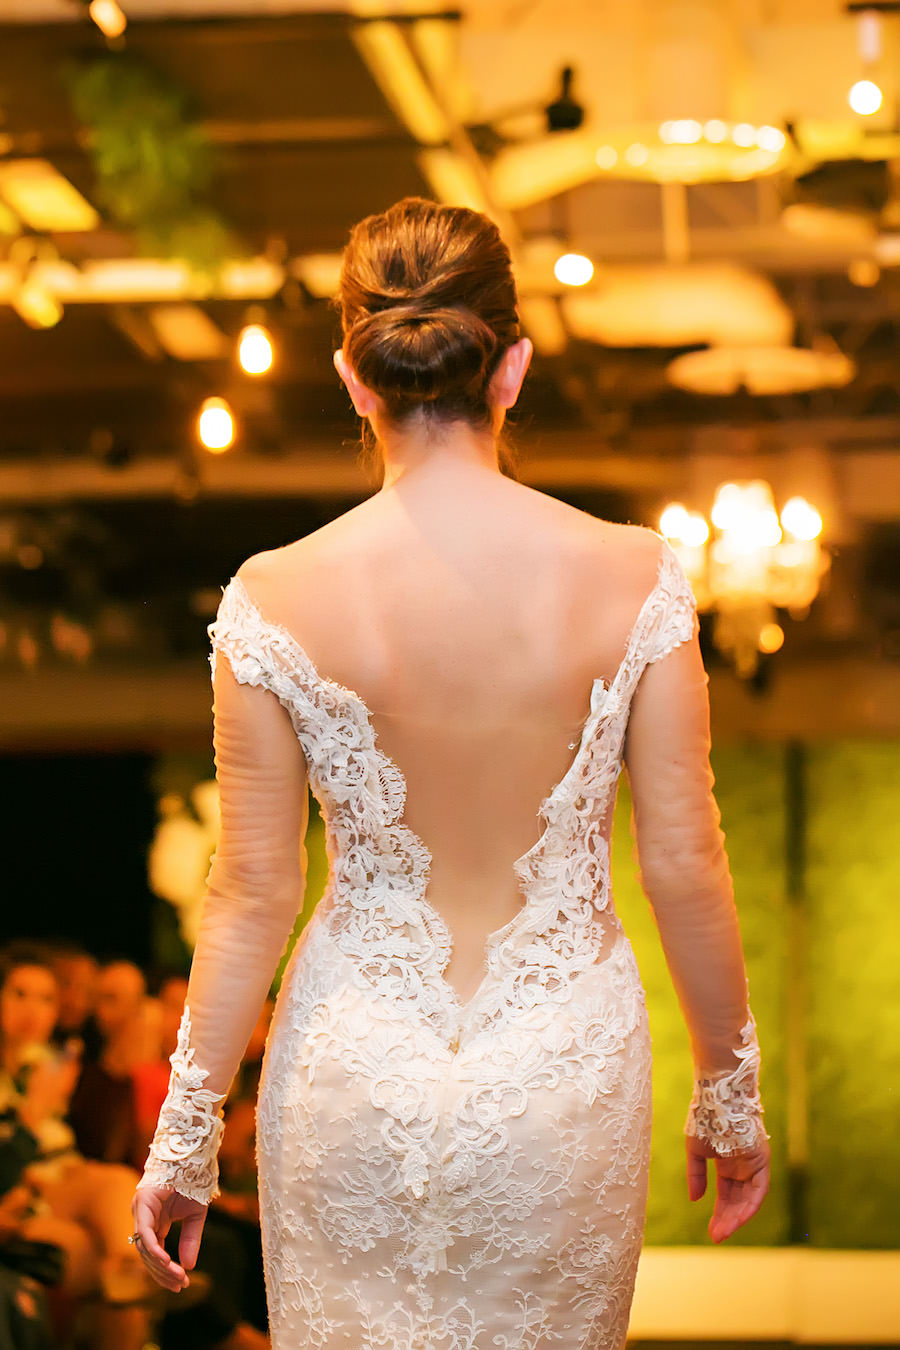 Low Cut Back Lace Wedding Dress | Marry Me Tampa Bay Wedding Week Bridal Fashion Runway Show | Tampa Bay Wedding Photographer Limelight Photography | Wedding Planner Glitz Events | Hair and Makeup Artist Michele Renee The Studio | Couture Wedding Dress Shop Isabel O'Neil Bridal